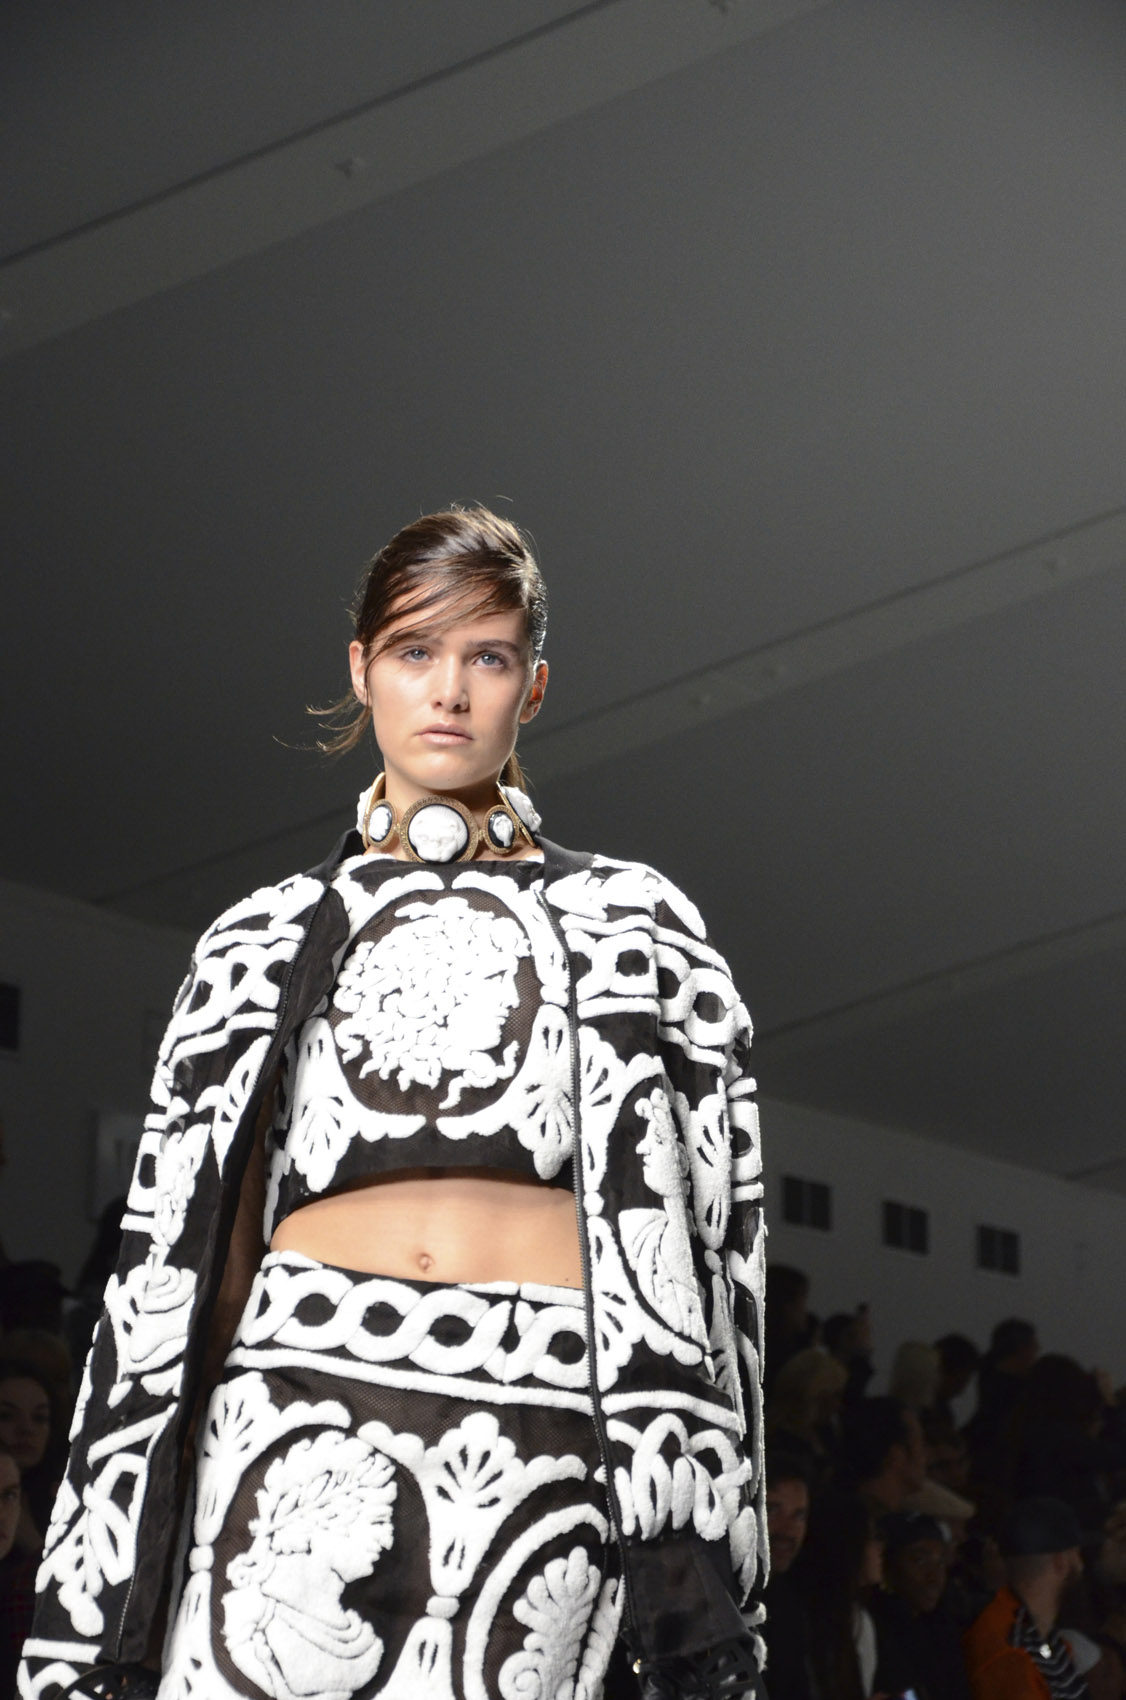 London Fashion Week KTZ 2015 Spring Summer Collection -CHASSEURMAGAZINE